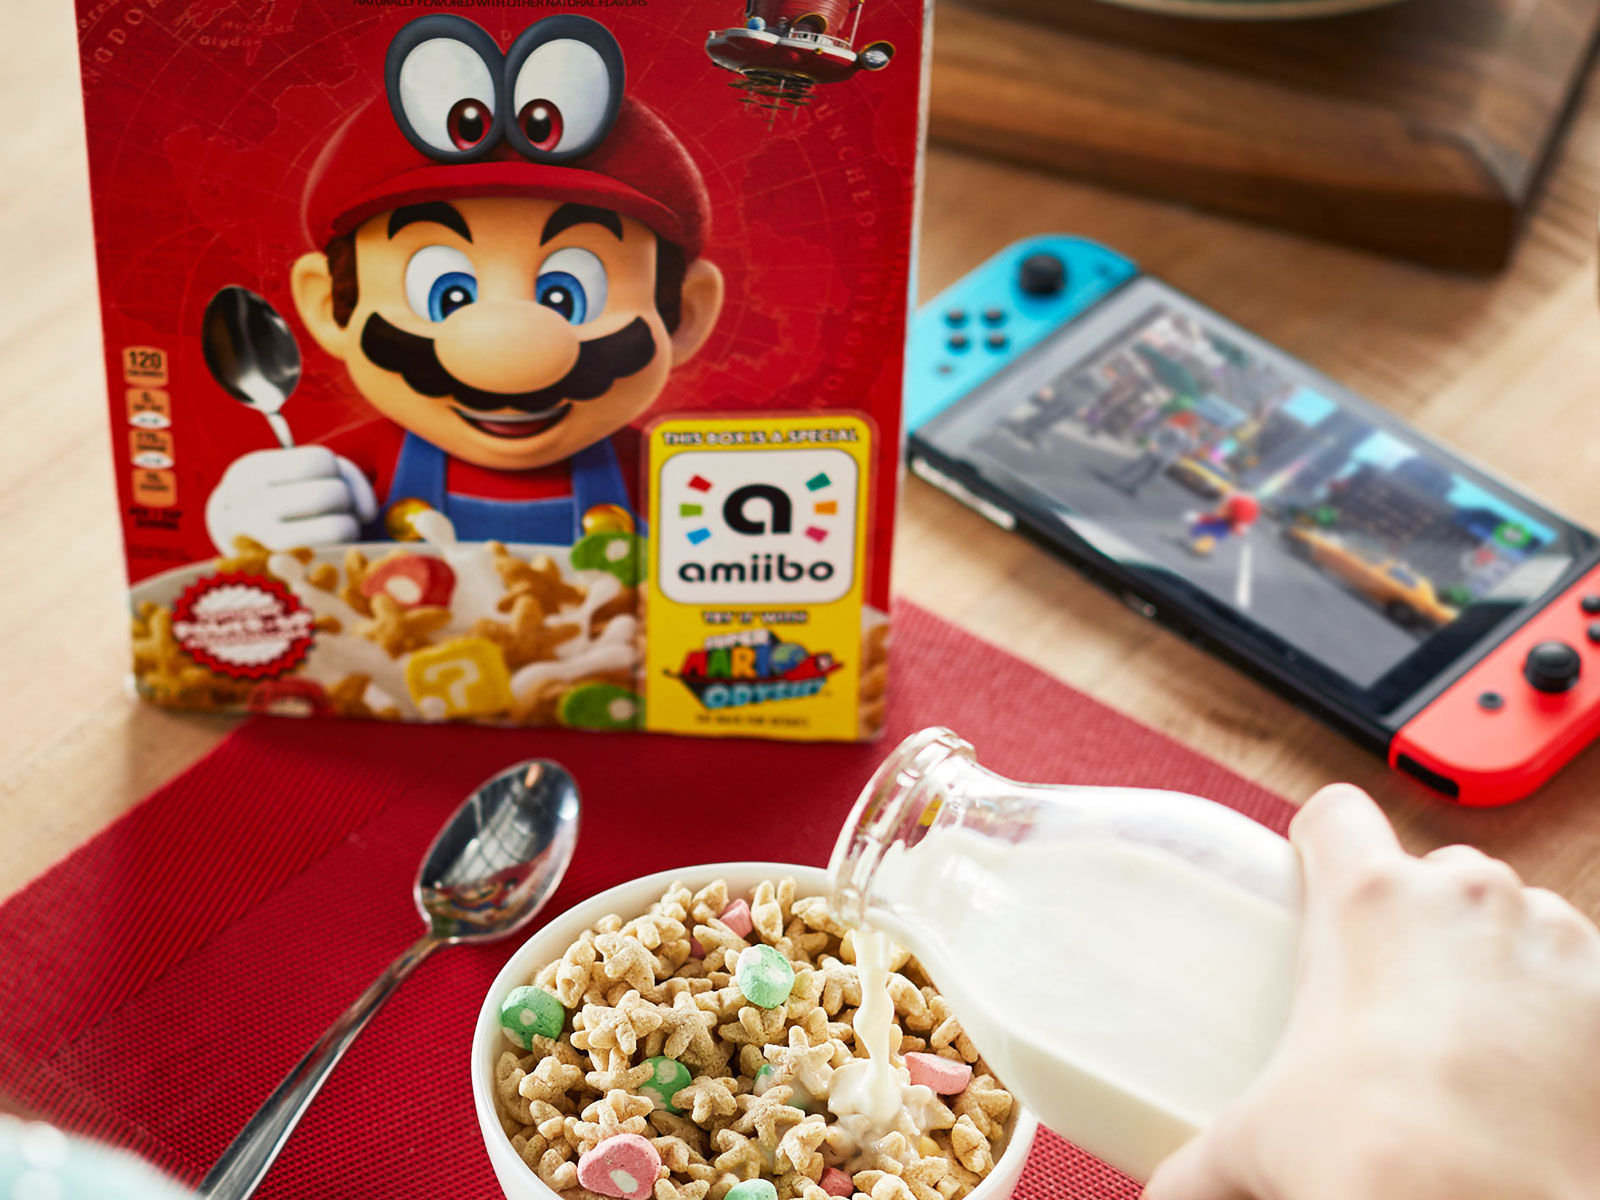 EC: Super Mario Cereal Is Finally Here to Take Your Breakfast to the Next Level